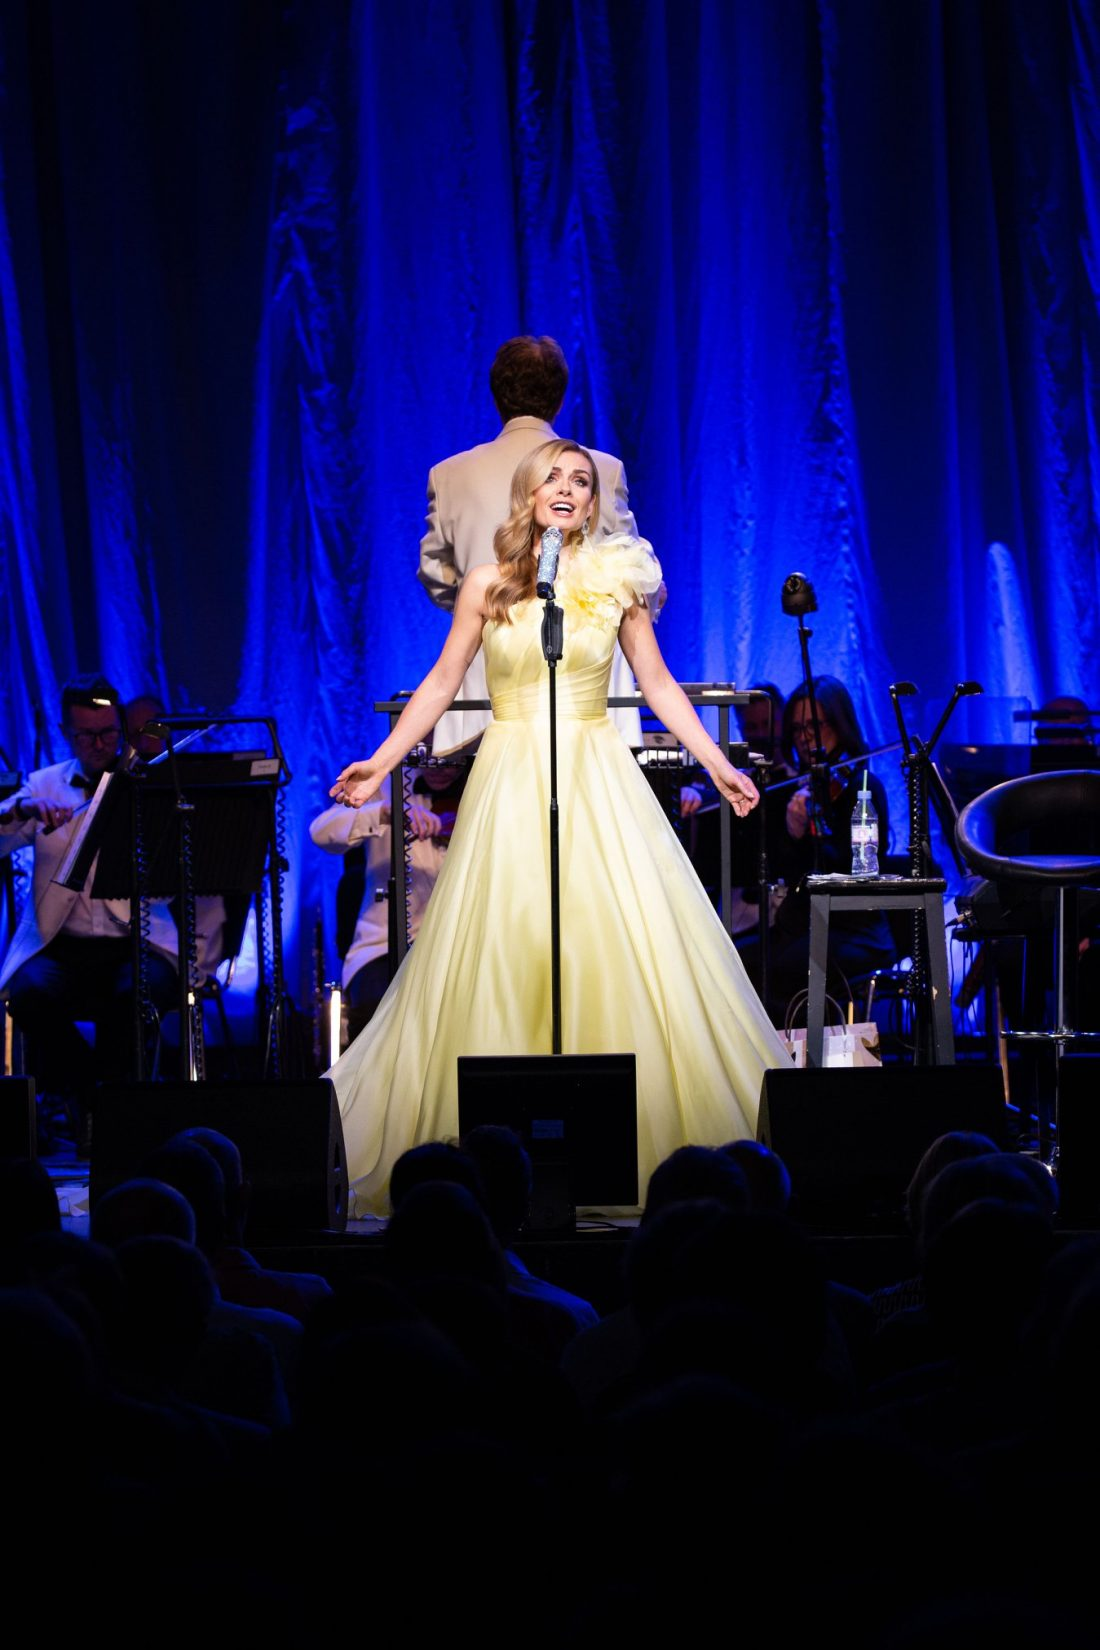 katherine-jenkins-wears-suzanne-neville-for-her-guiding-light-tour-at-the-london-palladium-3